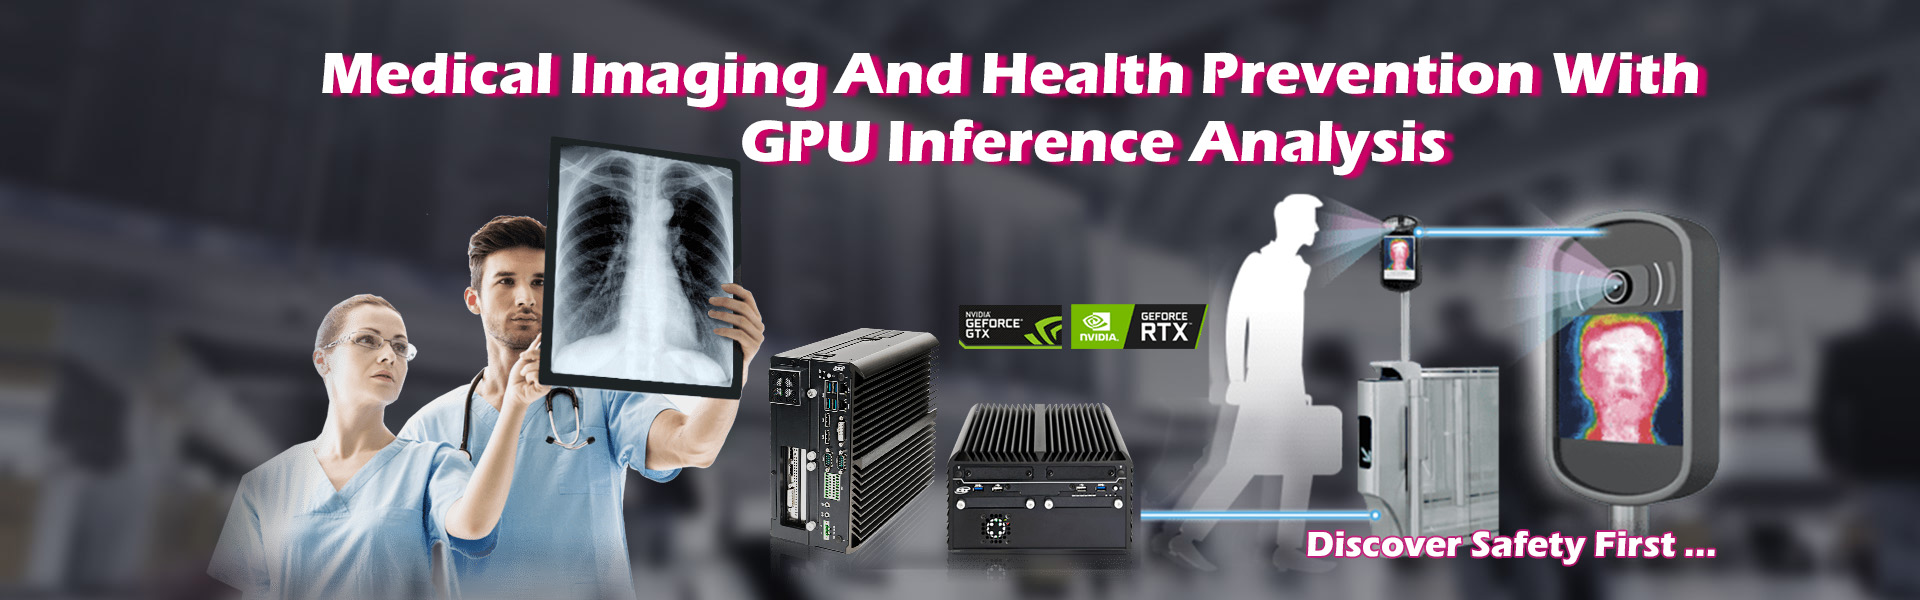 Medical Inference With GPU Edge Computer